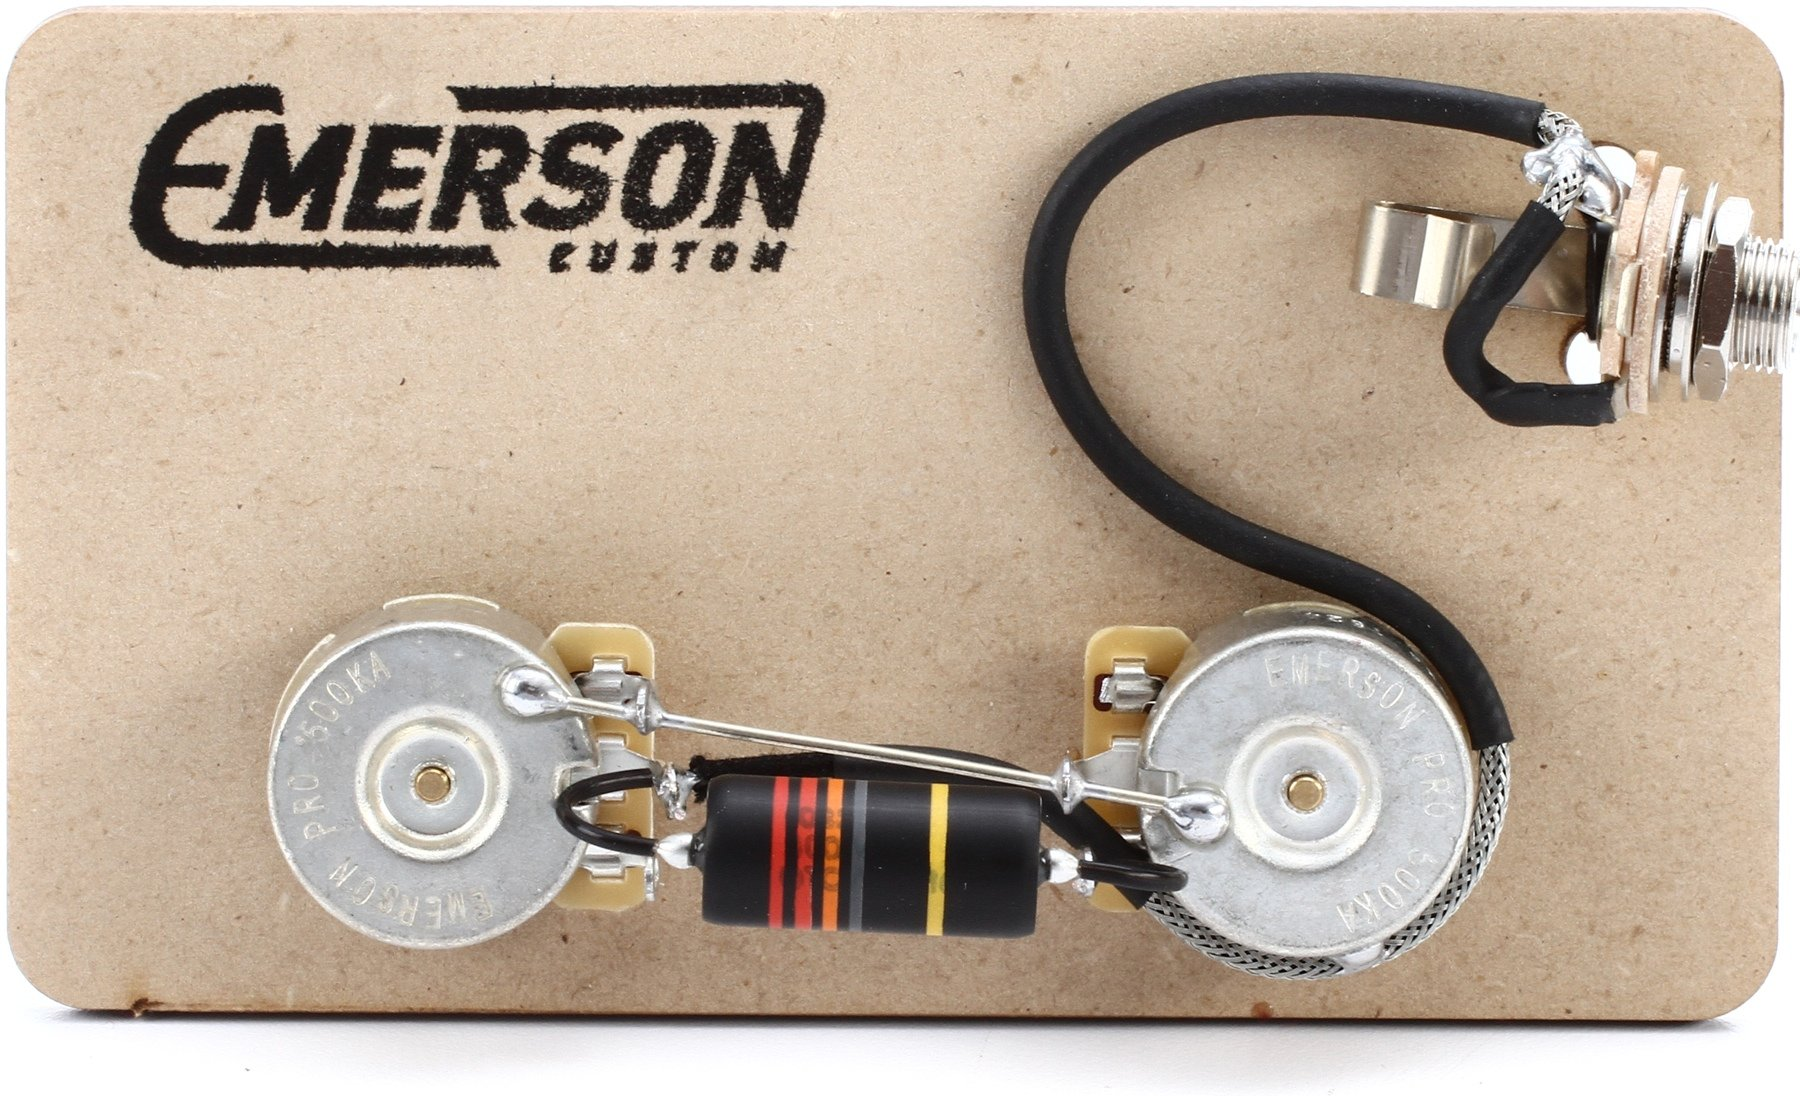 LPBBJR xlarge emerson custom prewired kit for gibson les paul junior sweetwater les paul junior wiring diagram at bayanpartner.co